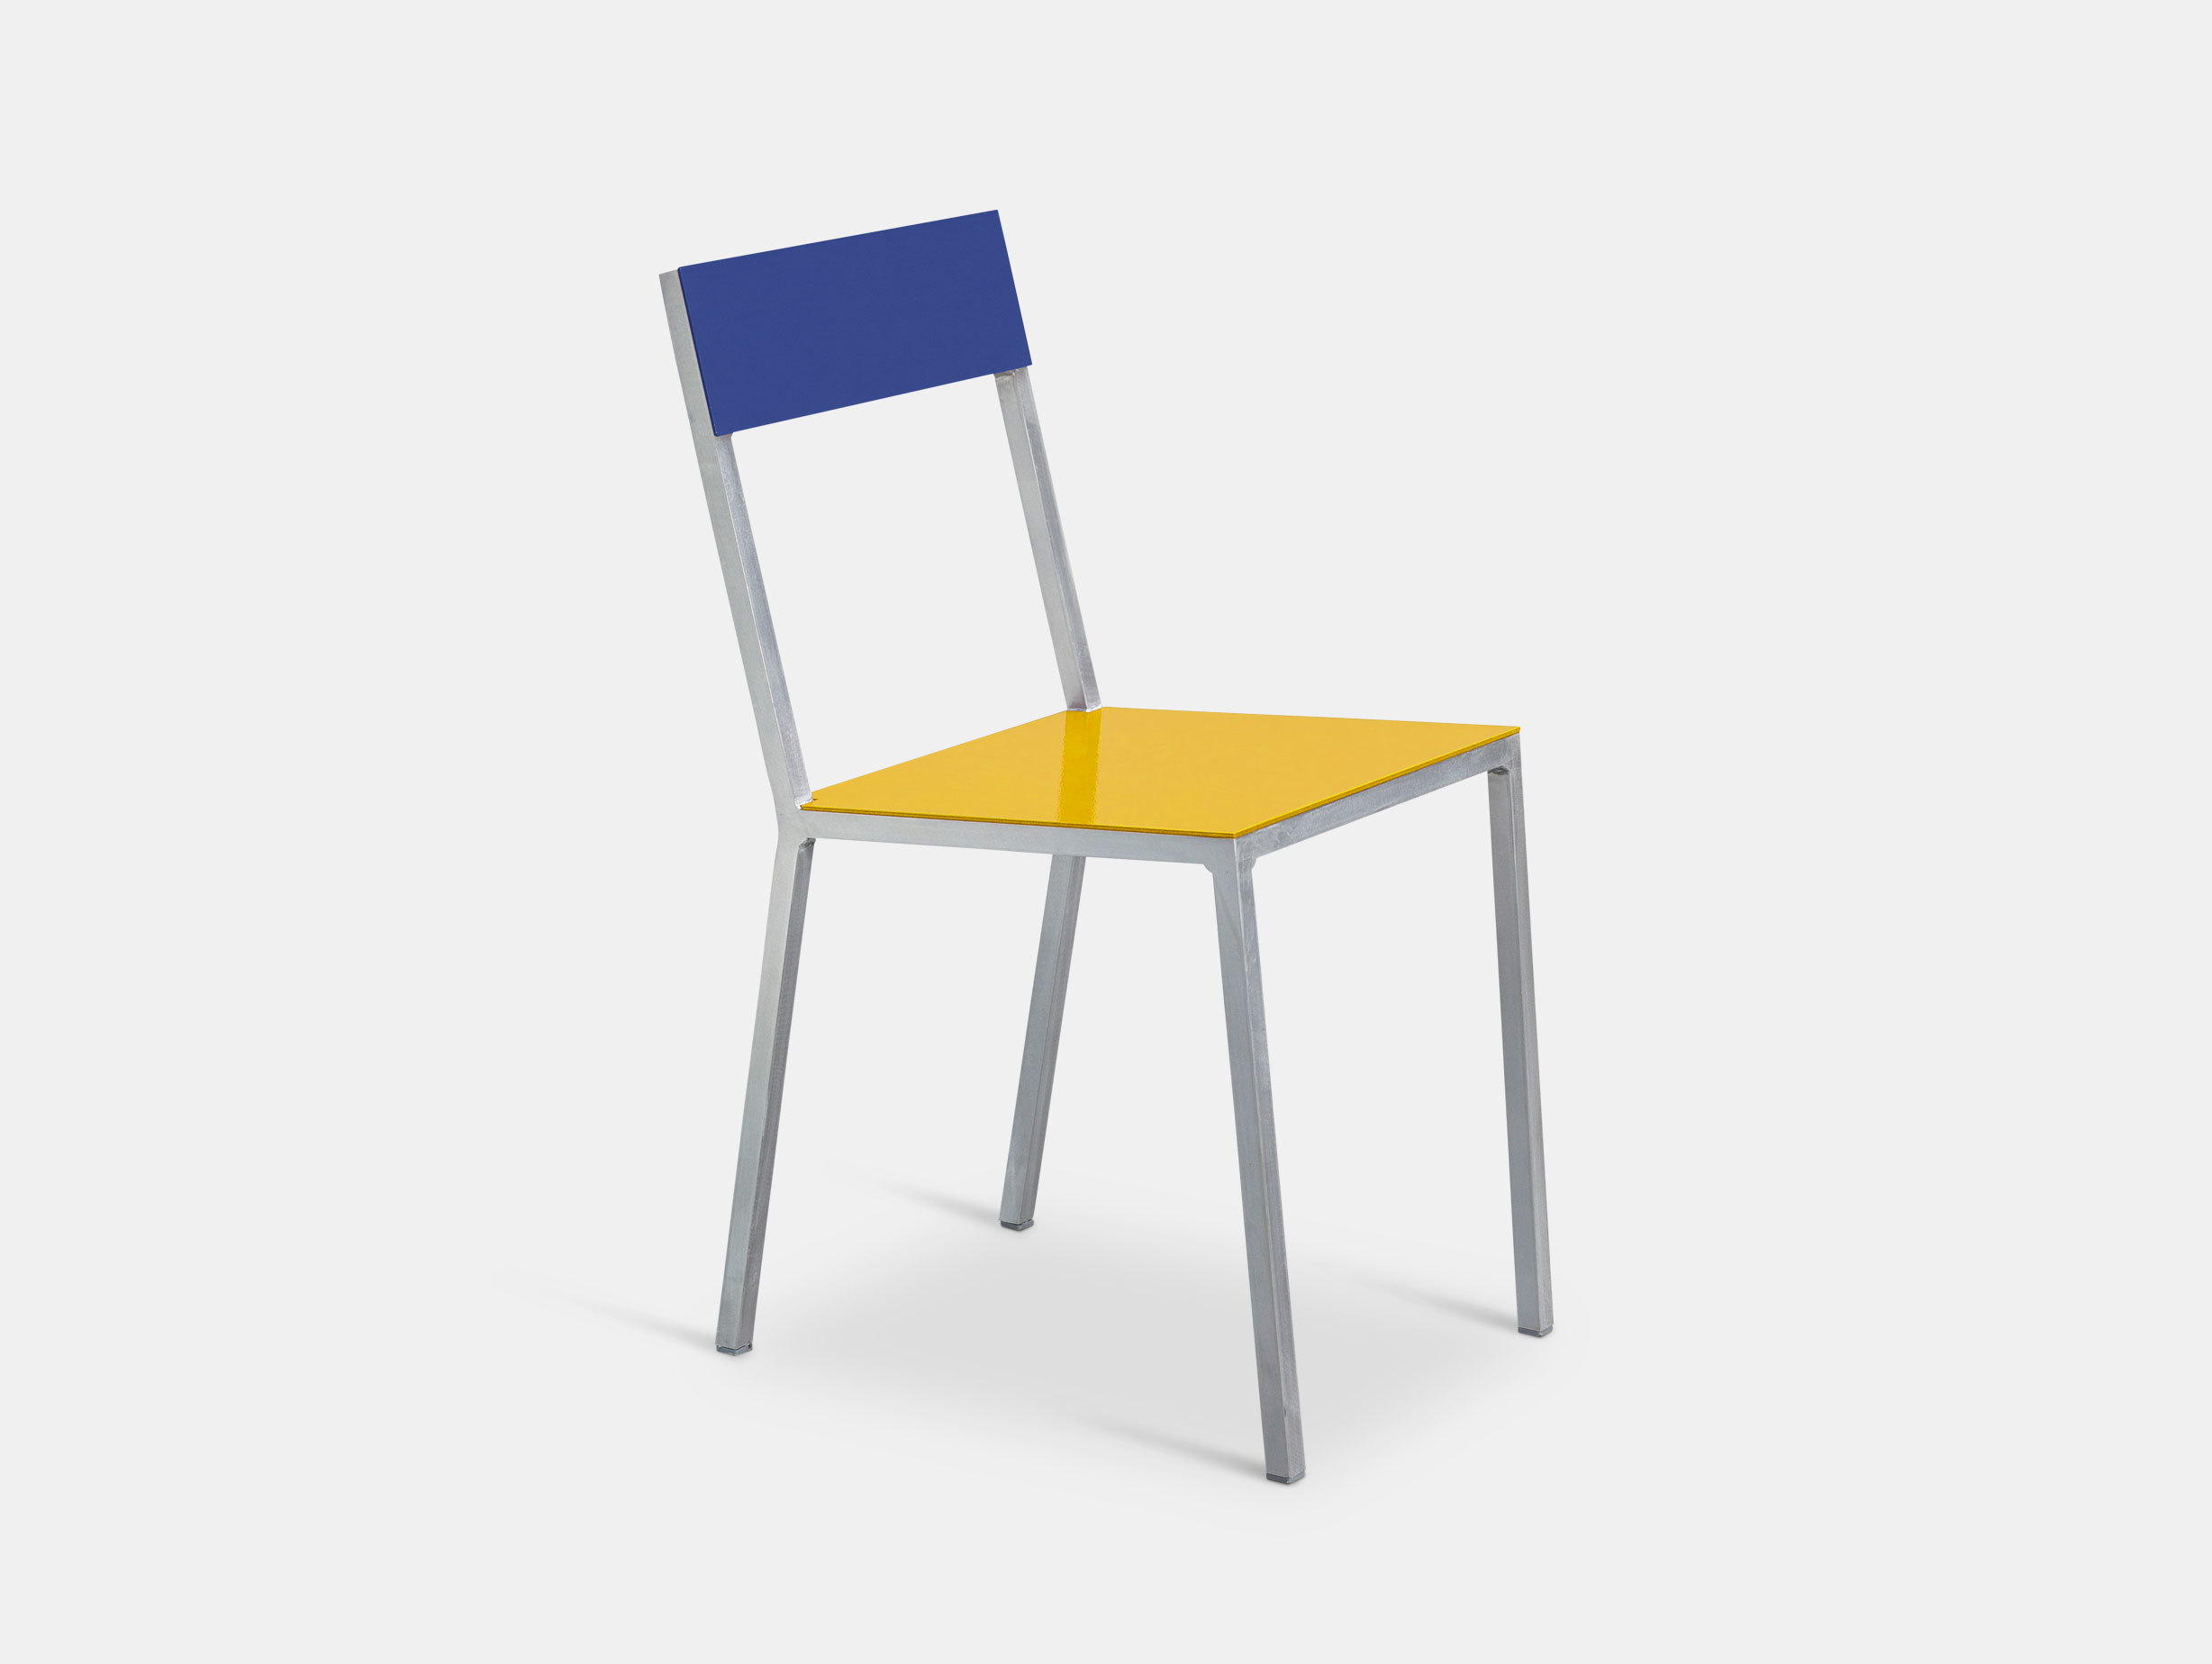 Valerie Objects Alu Chair Seatyellow Backbleu Muller Van Severen